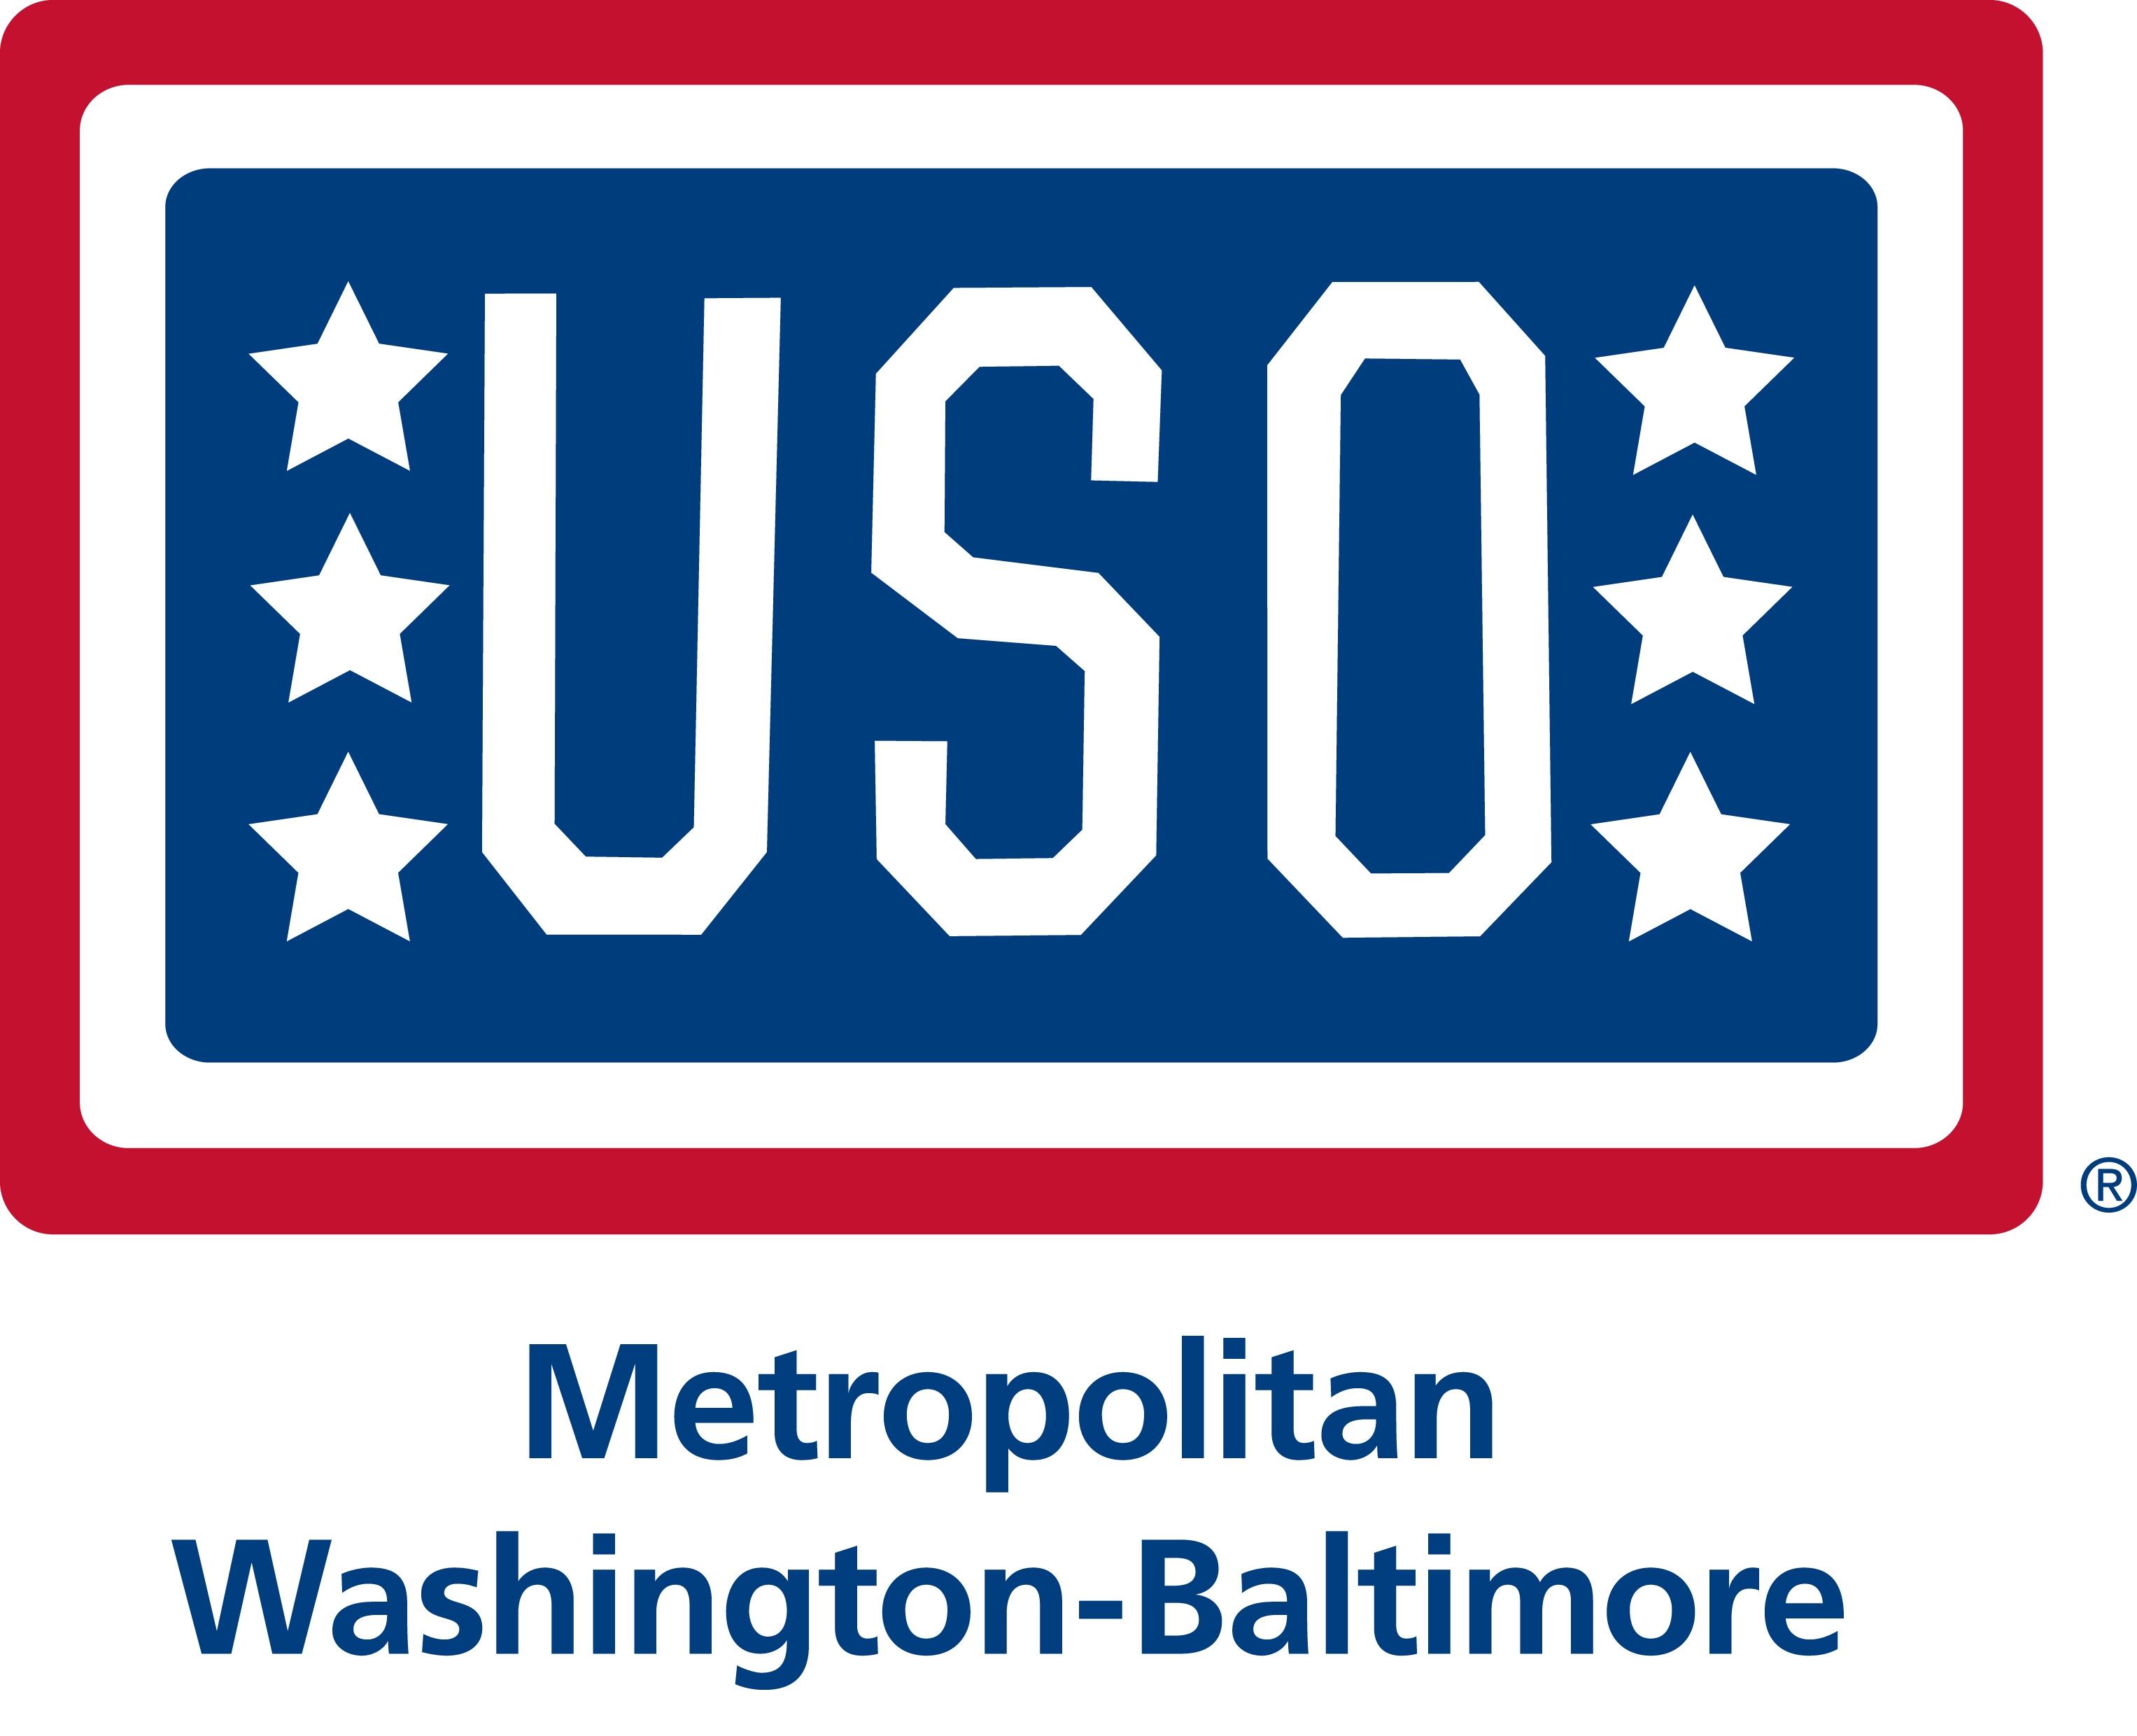 USO Washington-Baltimore